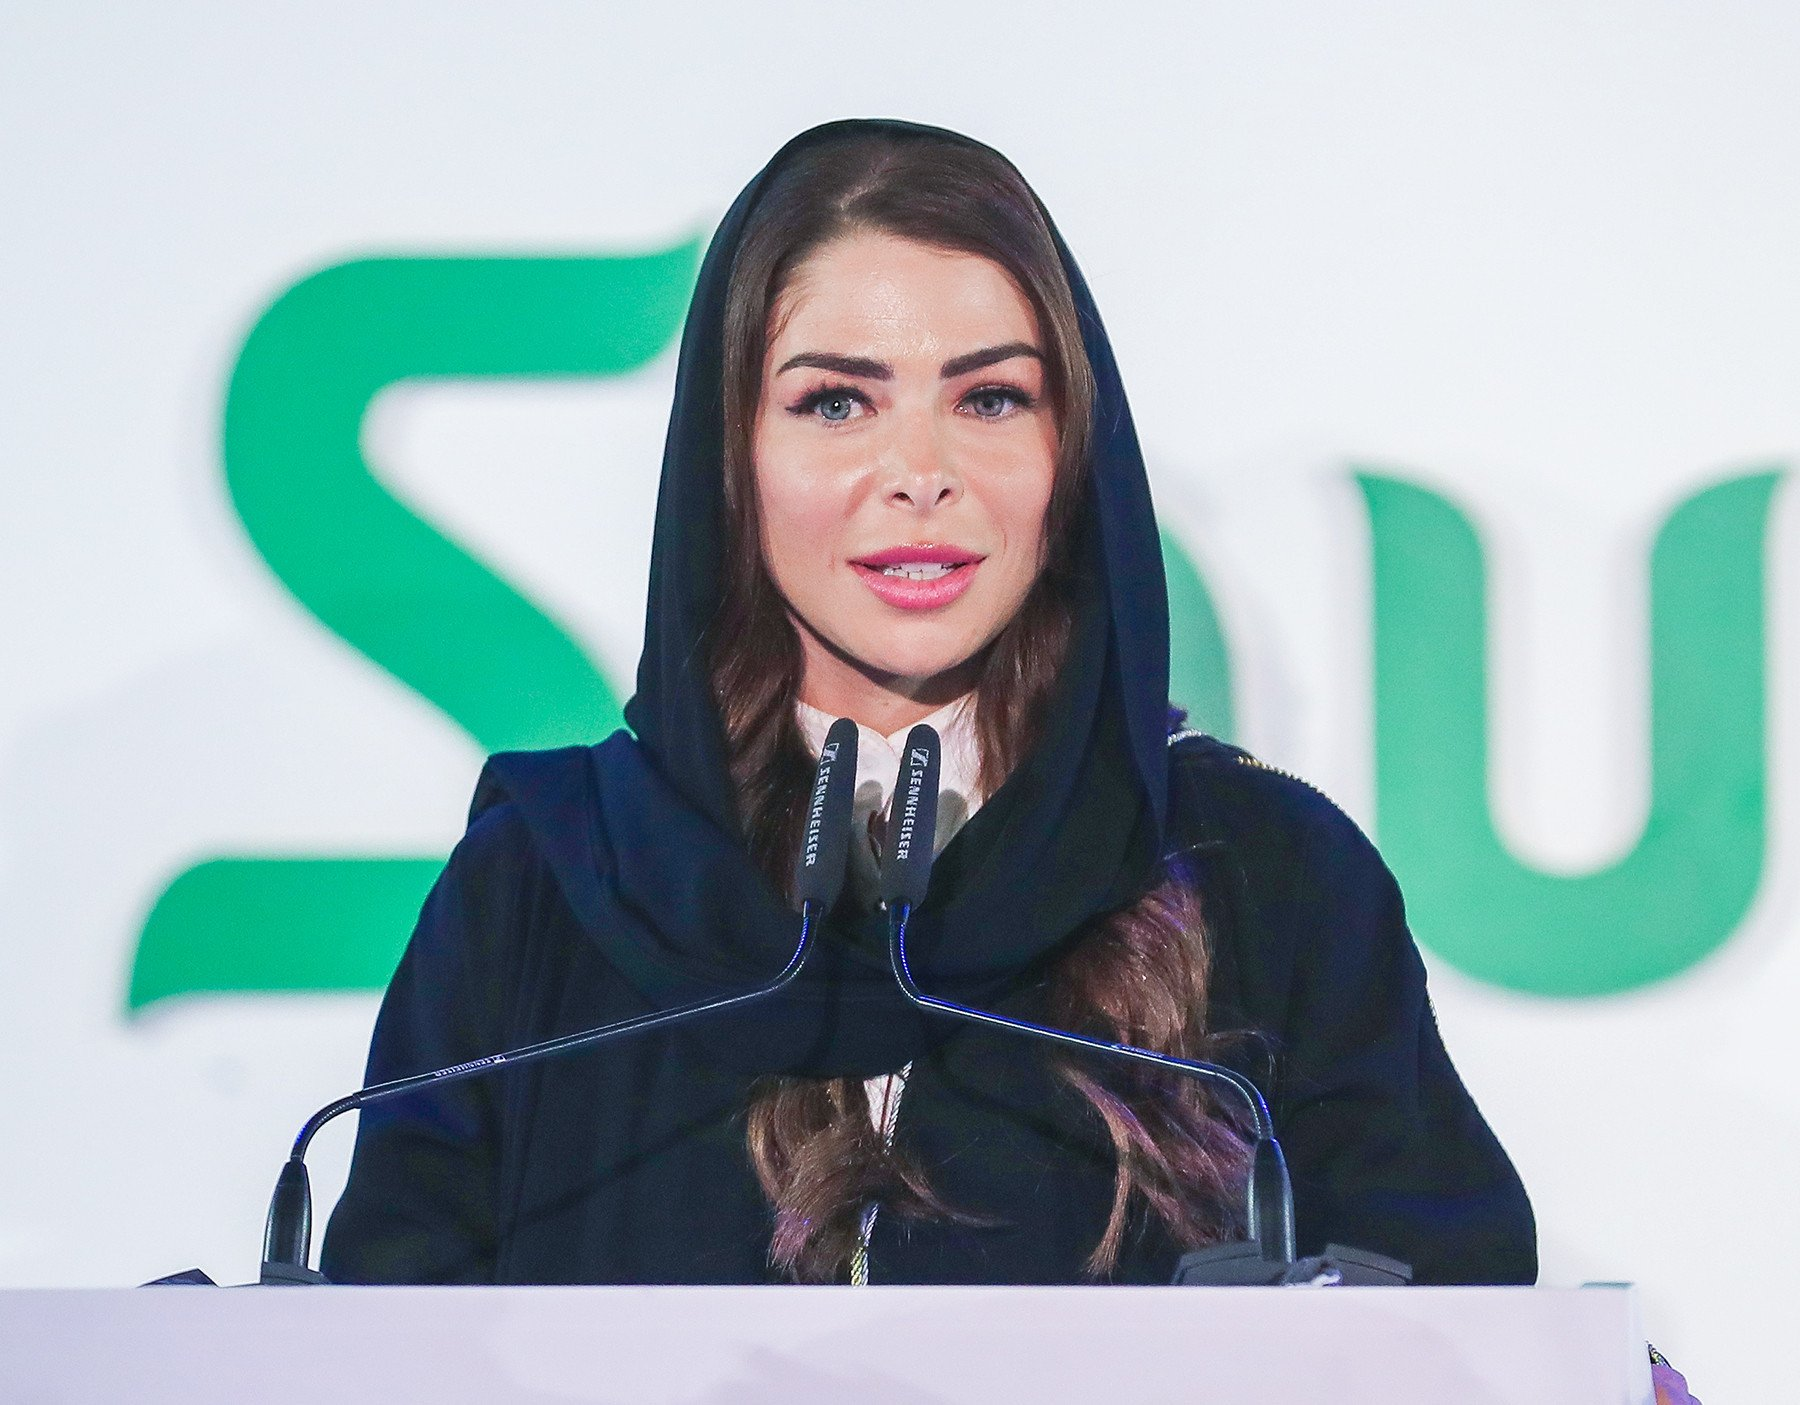 Riyadh 2030 puts Saudi Arabia's first female Olympic medallist in charge of Athletes' Commission